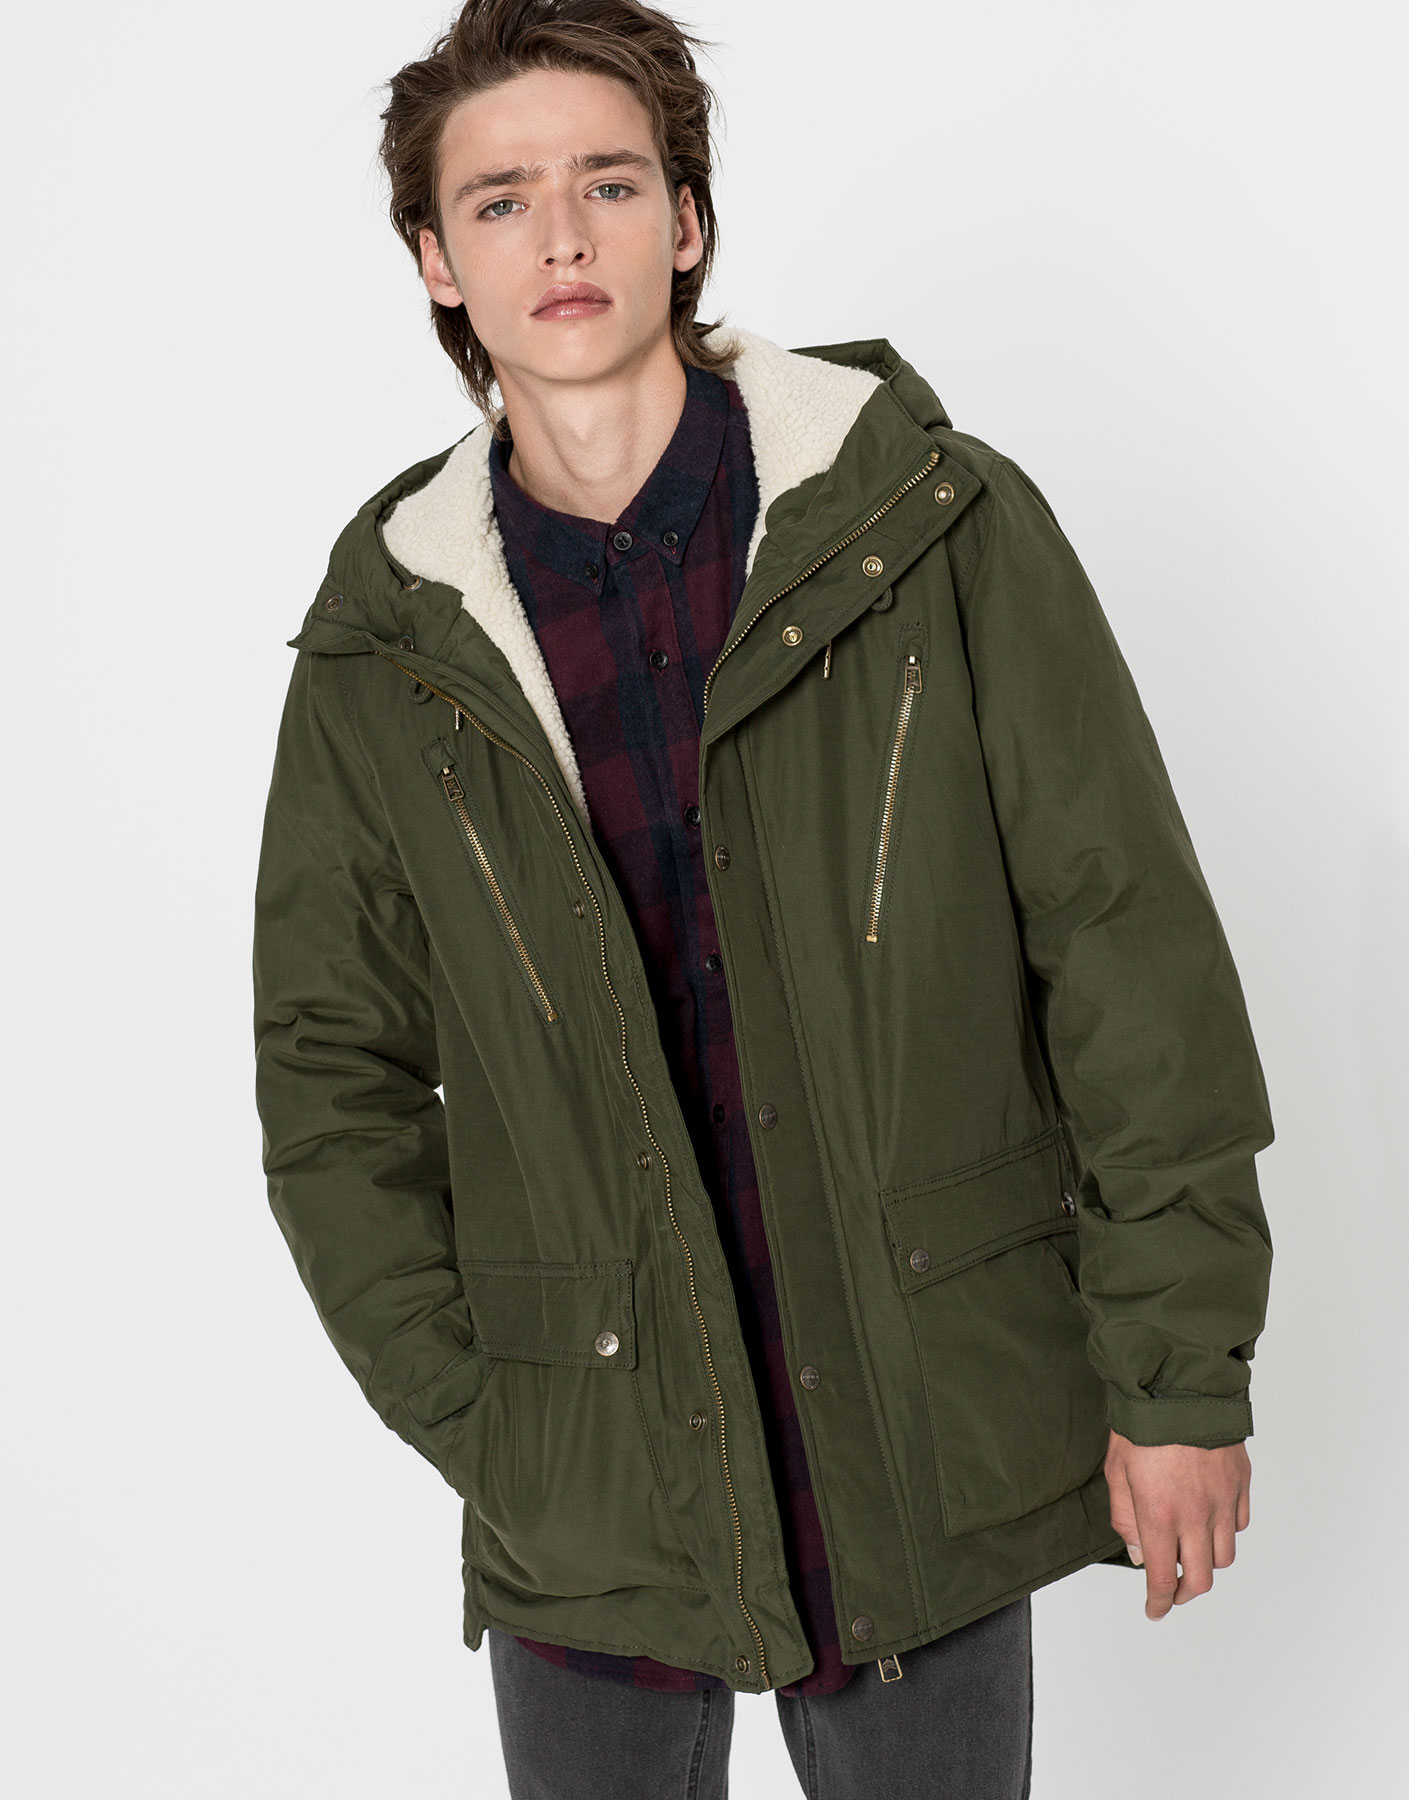 Zipped parka with fleecy interior